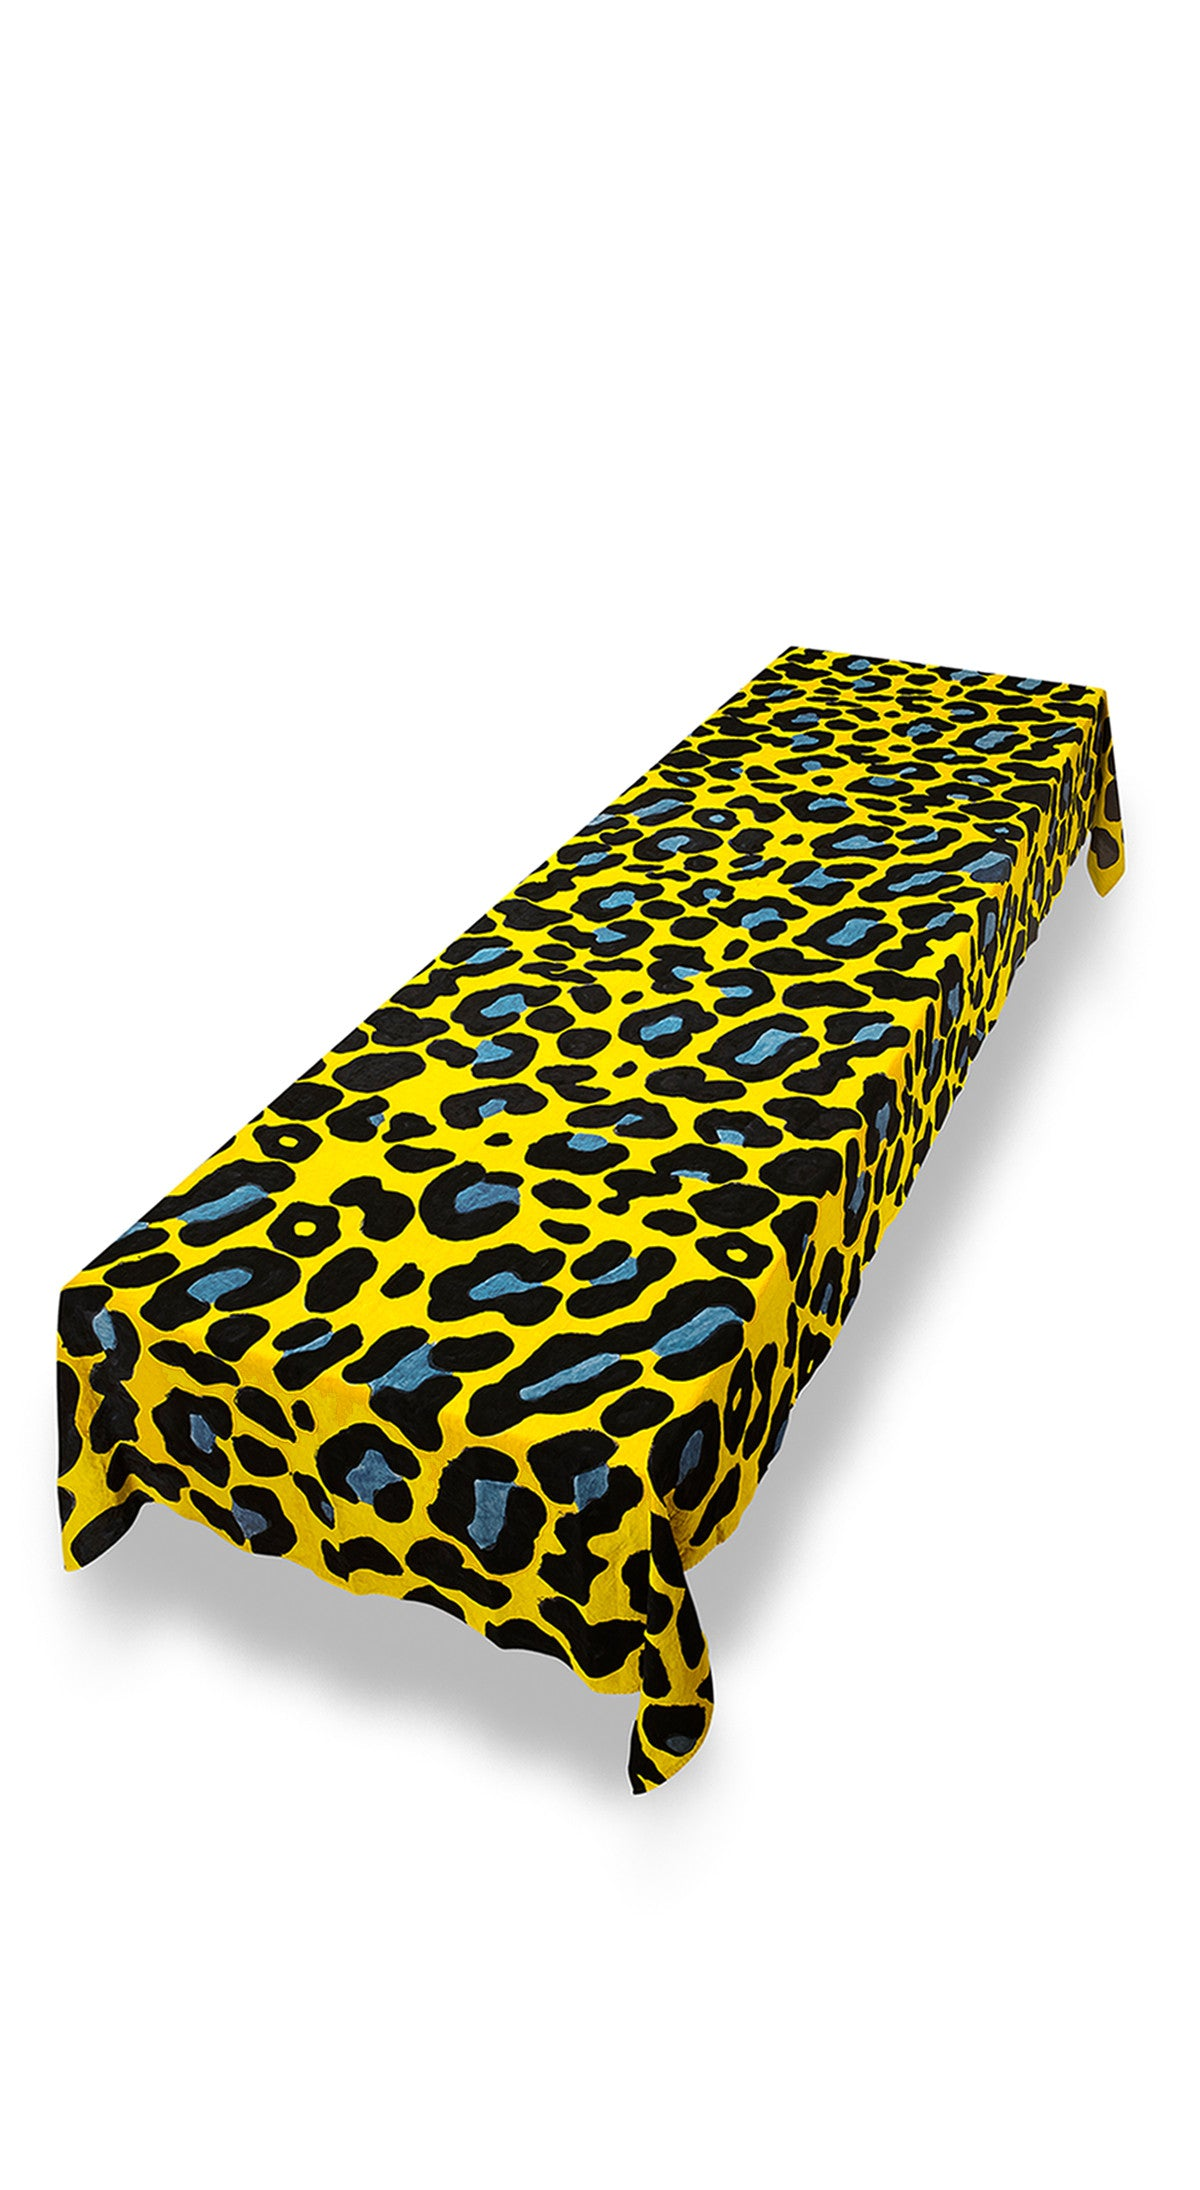 Fierce Leopard Linen Tablecloth in Lemon Yellow with Powder And Midnight Blue Spots